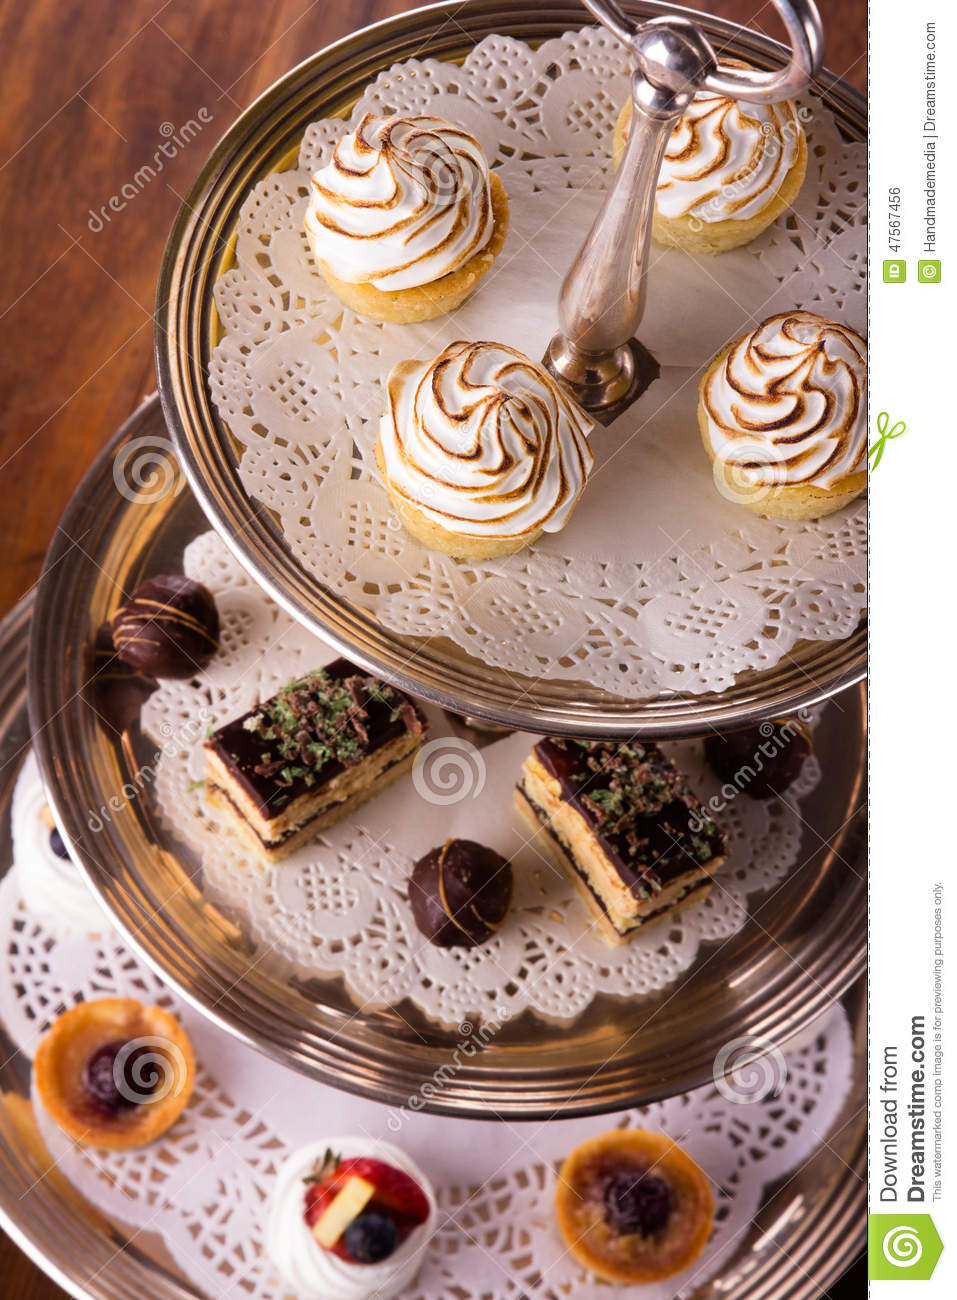 Delicious Dessert Selection Stock Photo - Image of buffet, catering